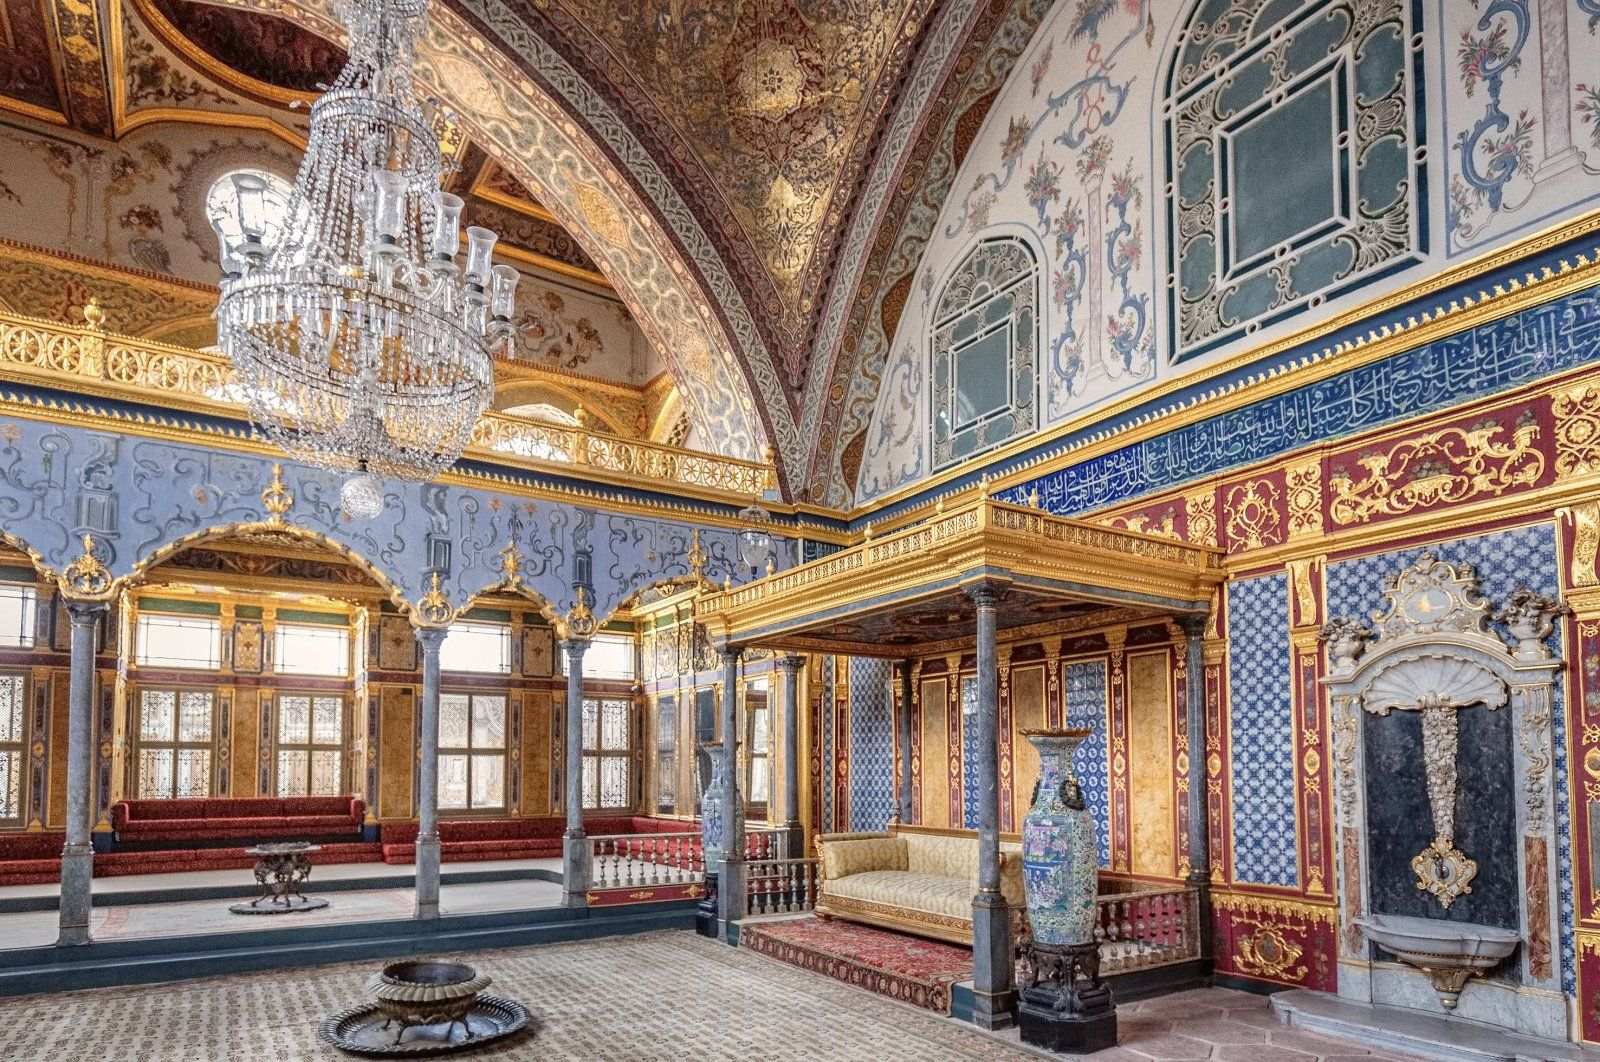 Topkapı Palace is one of the museums available for virtual